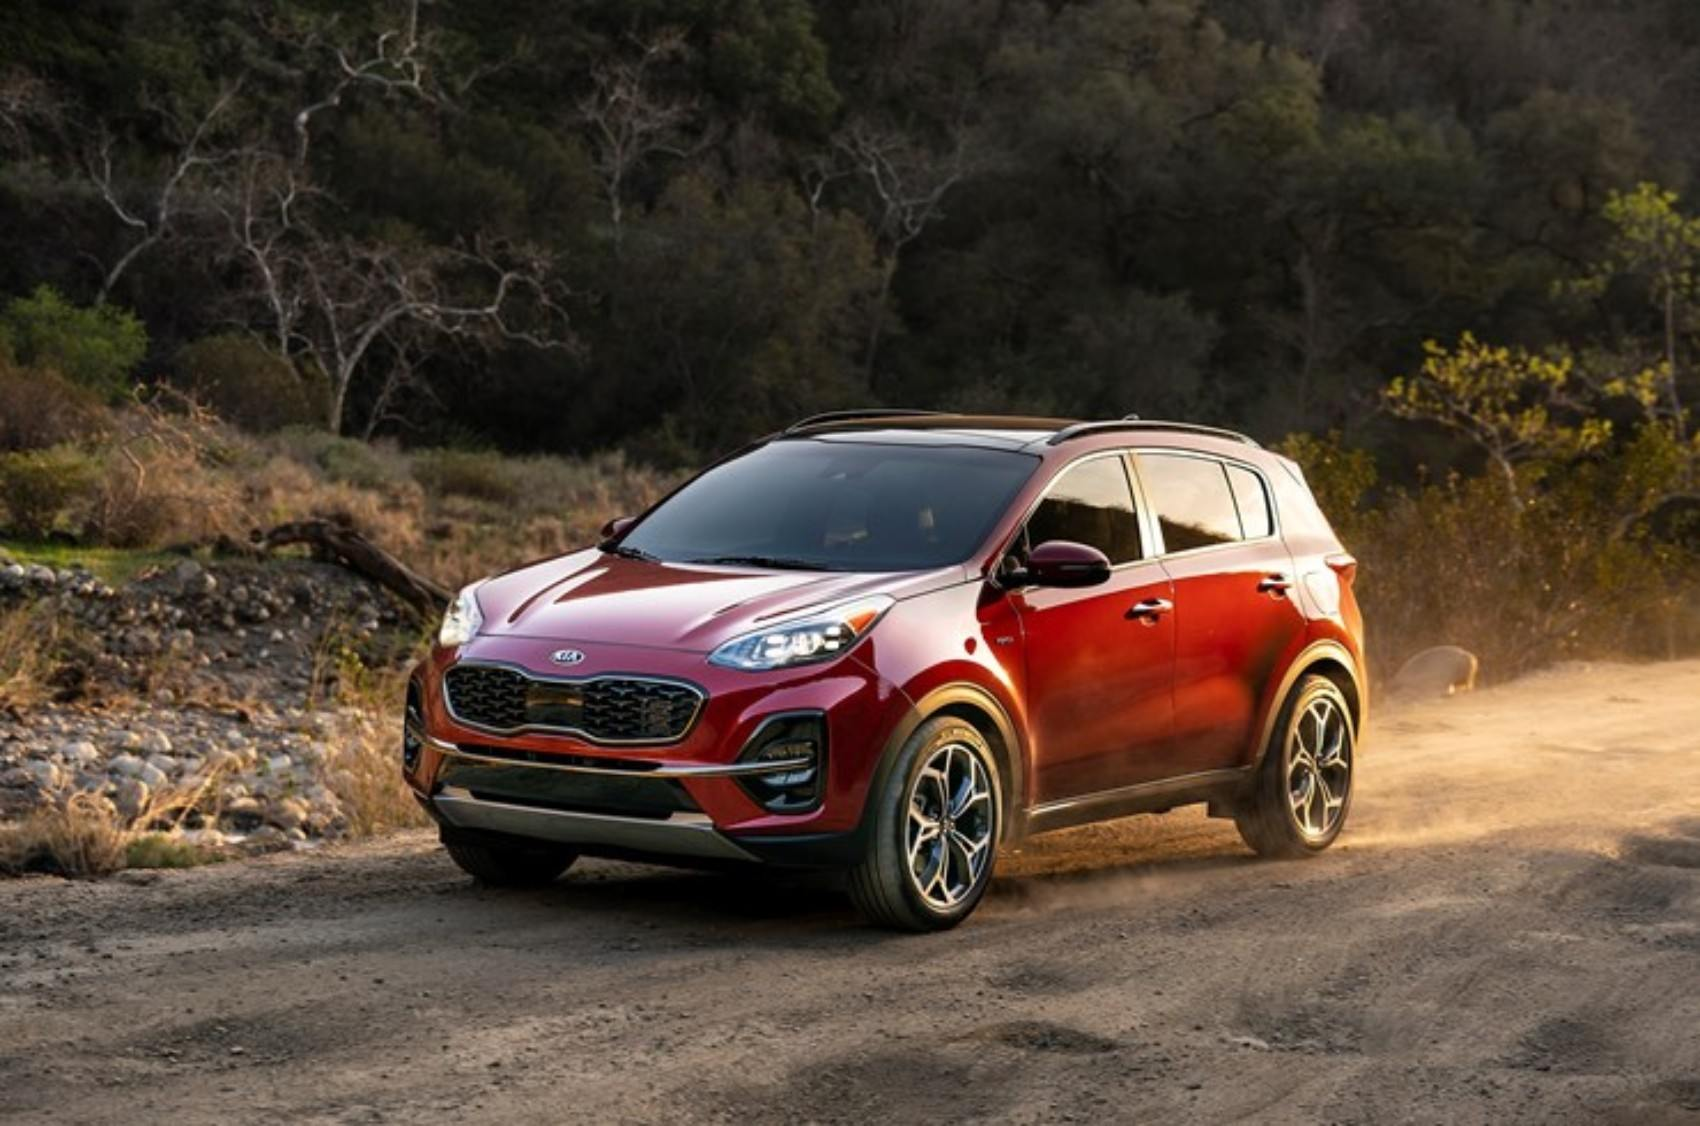 20 All New 2020 Kia Sportage History